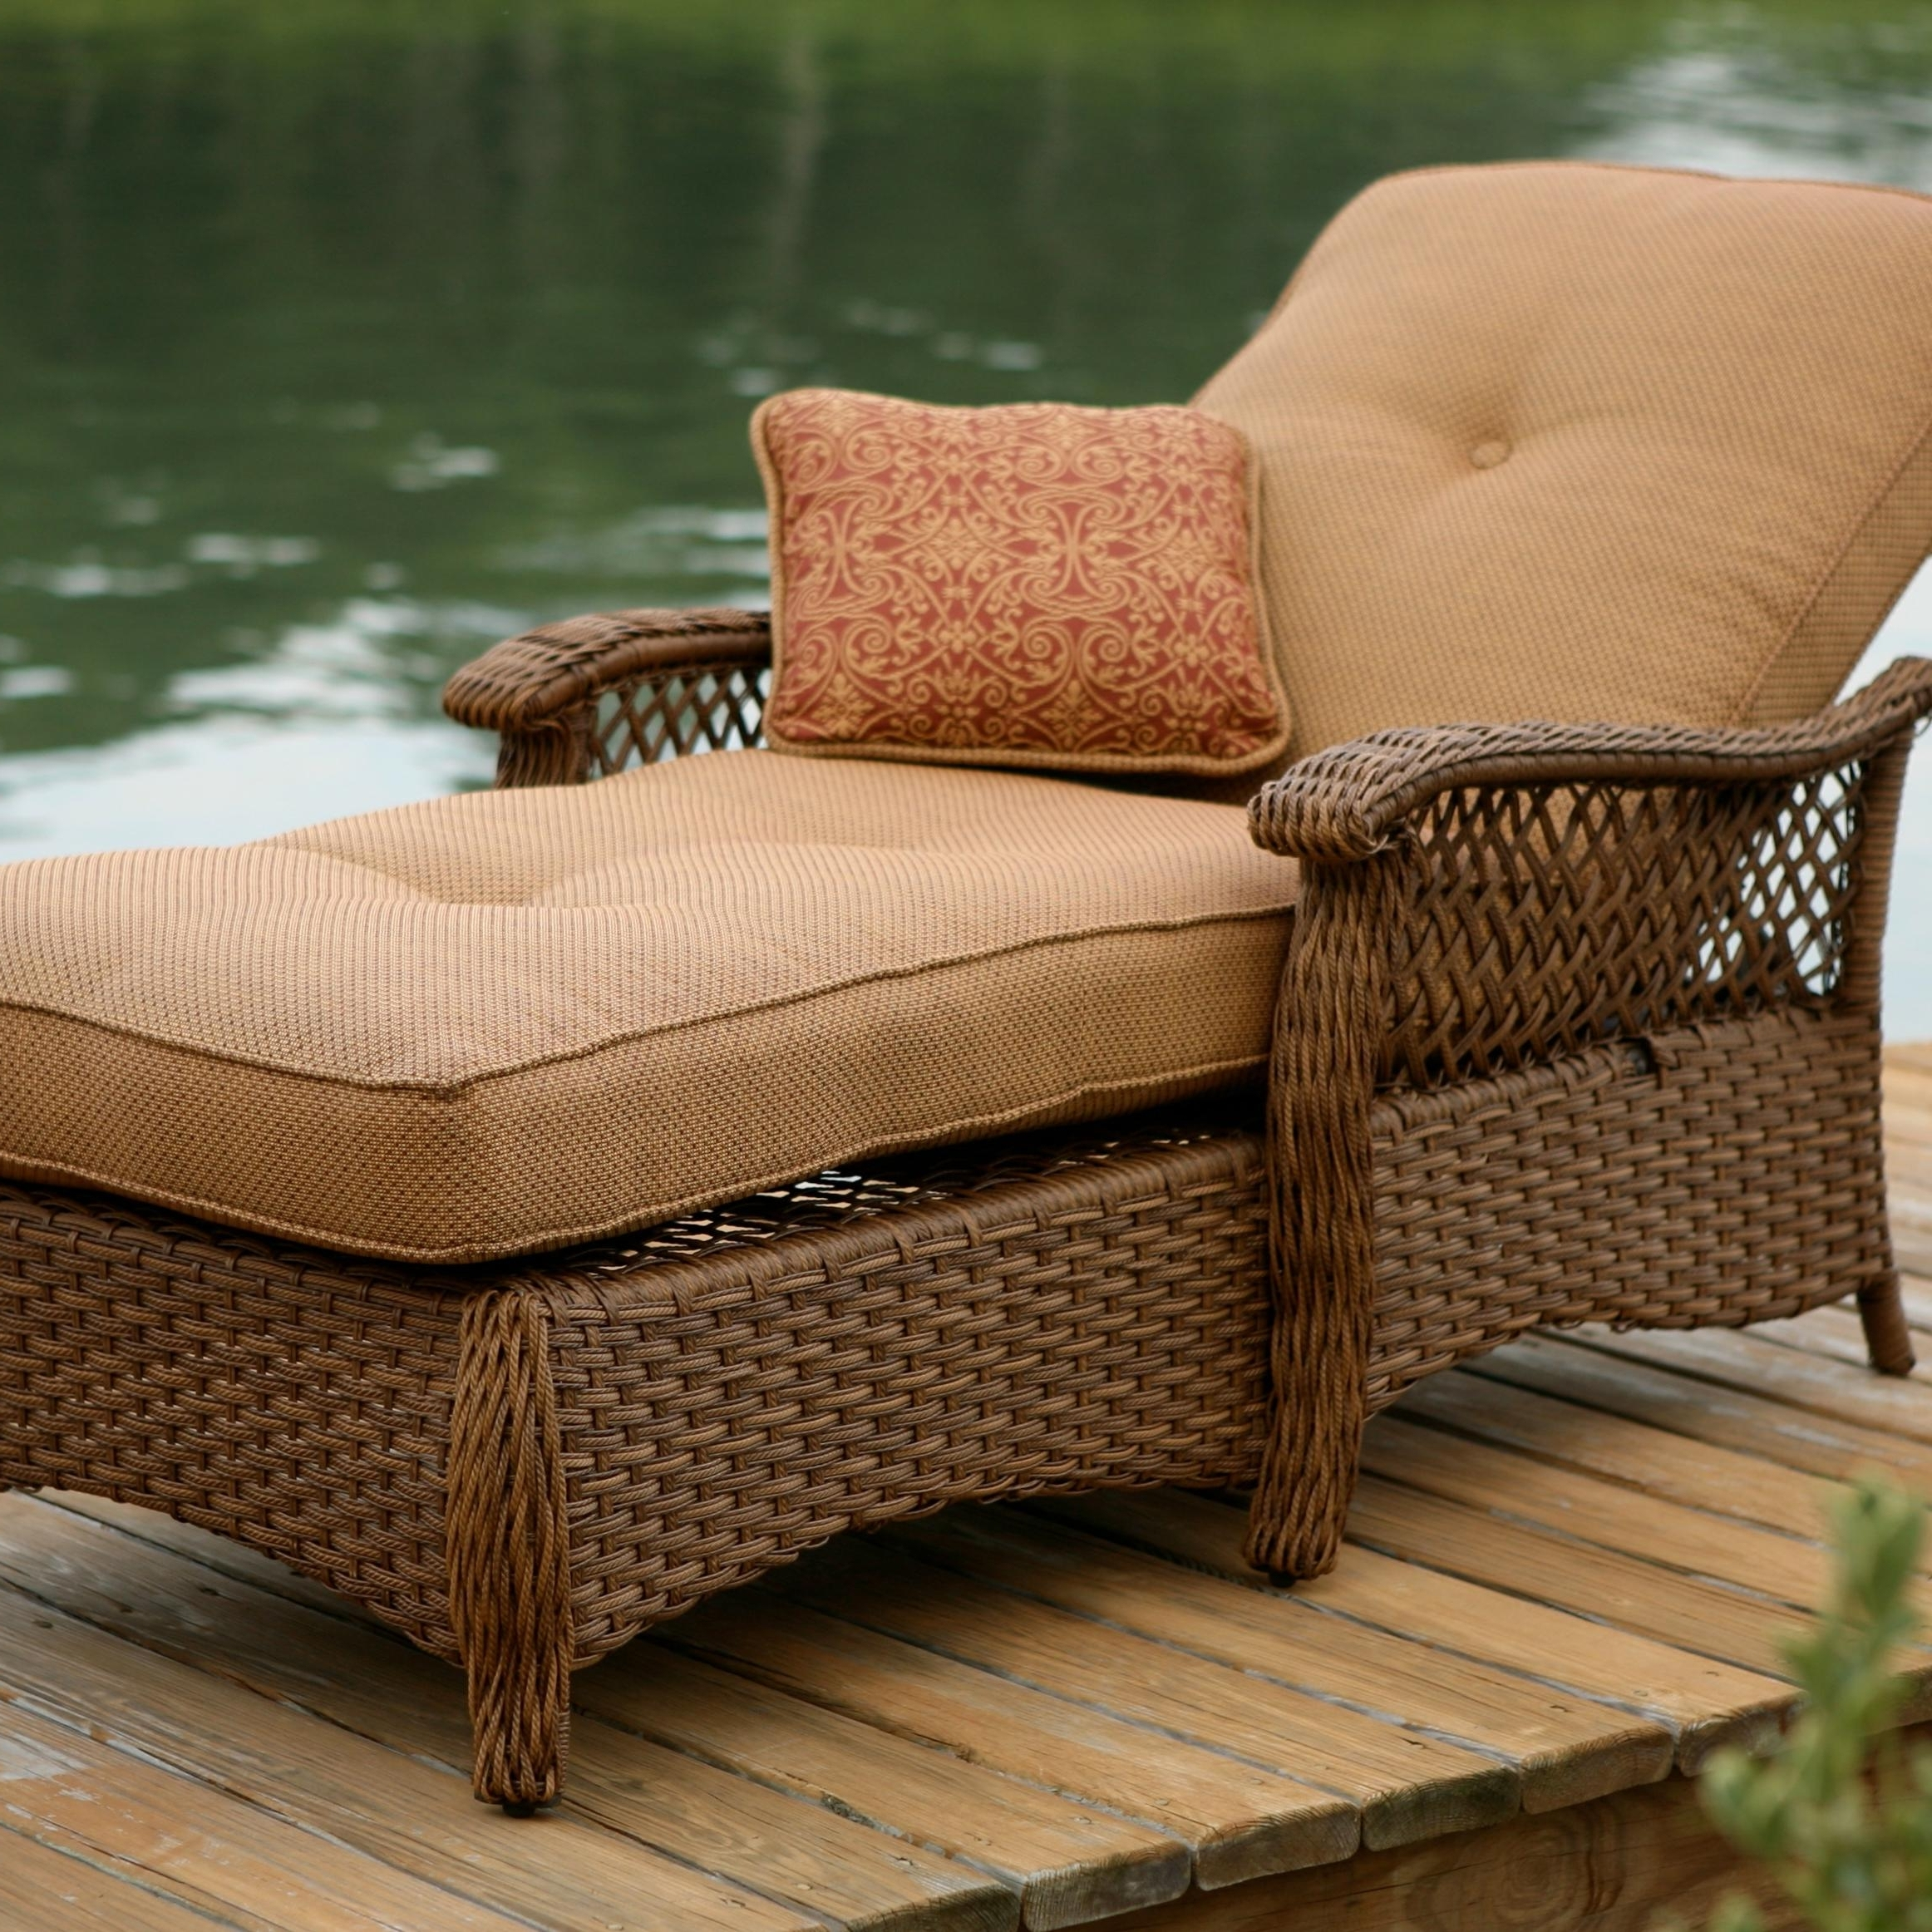 Fashionable Outdoor Chaises Regarding Patio Furniture Lounge Chair • Lounge Chairs Ideas (View 7 of 15)